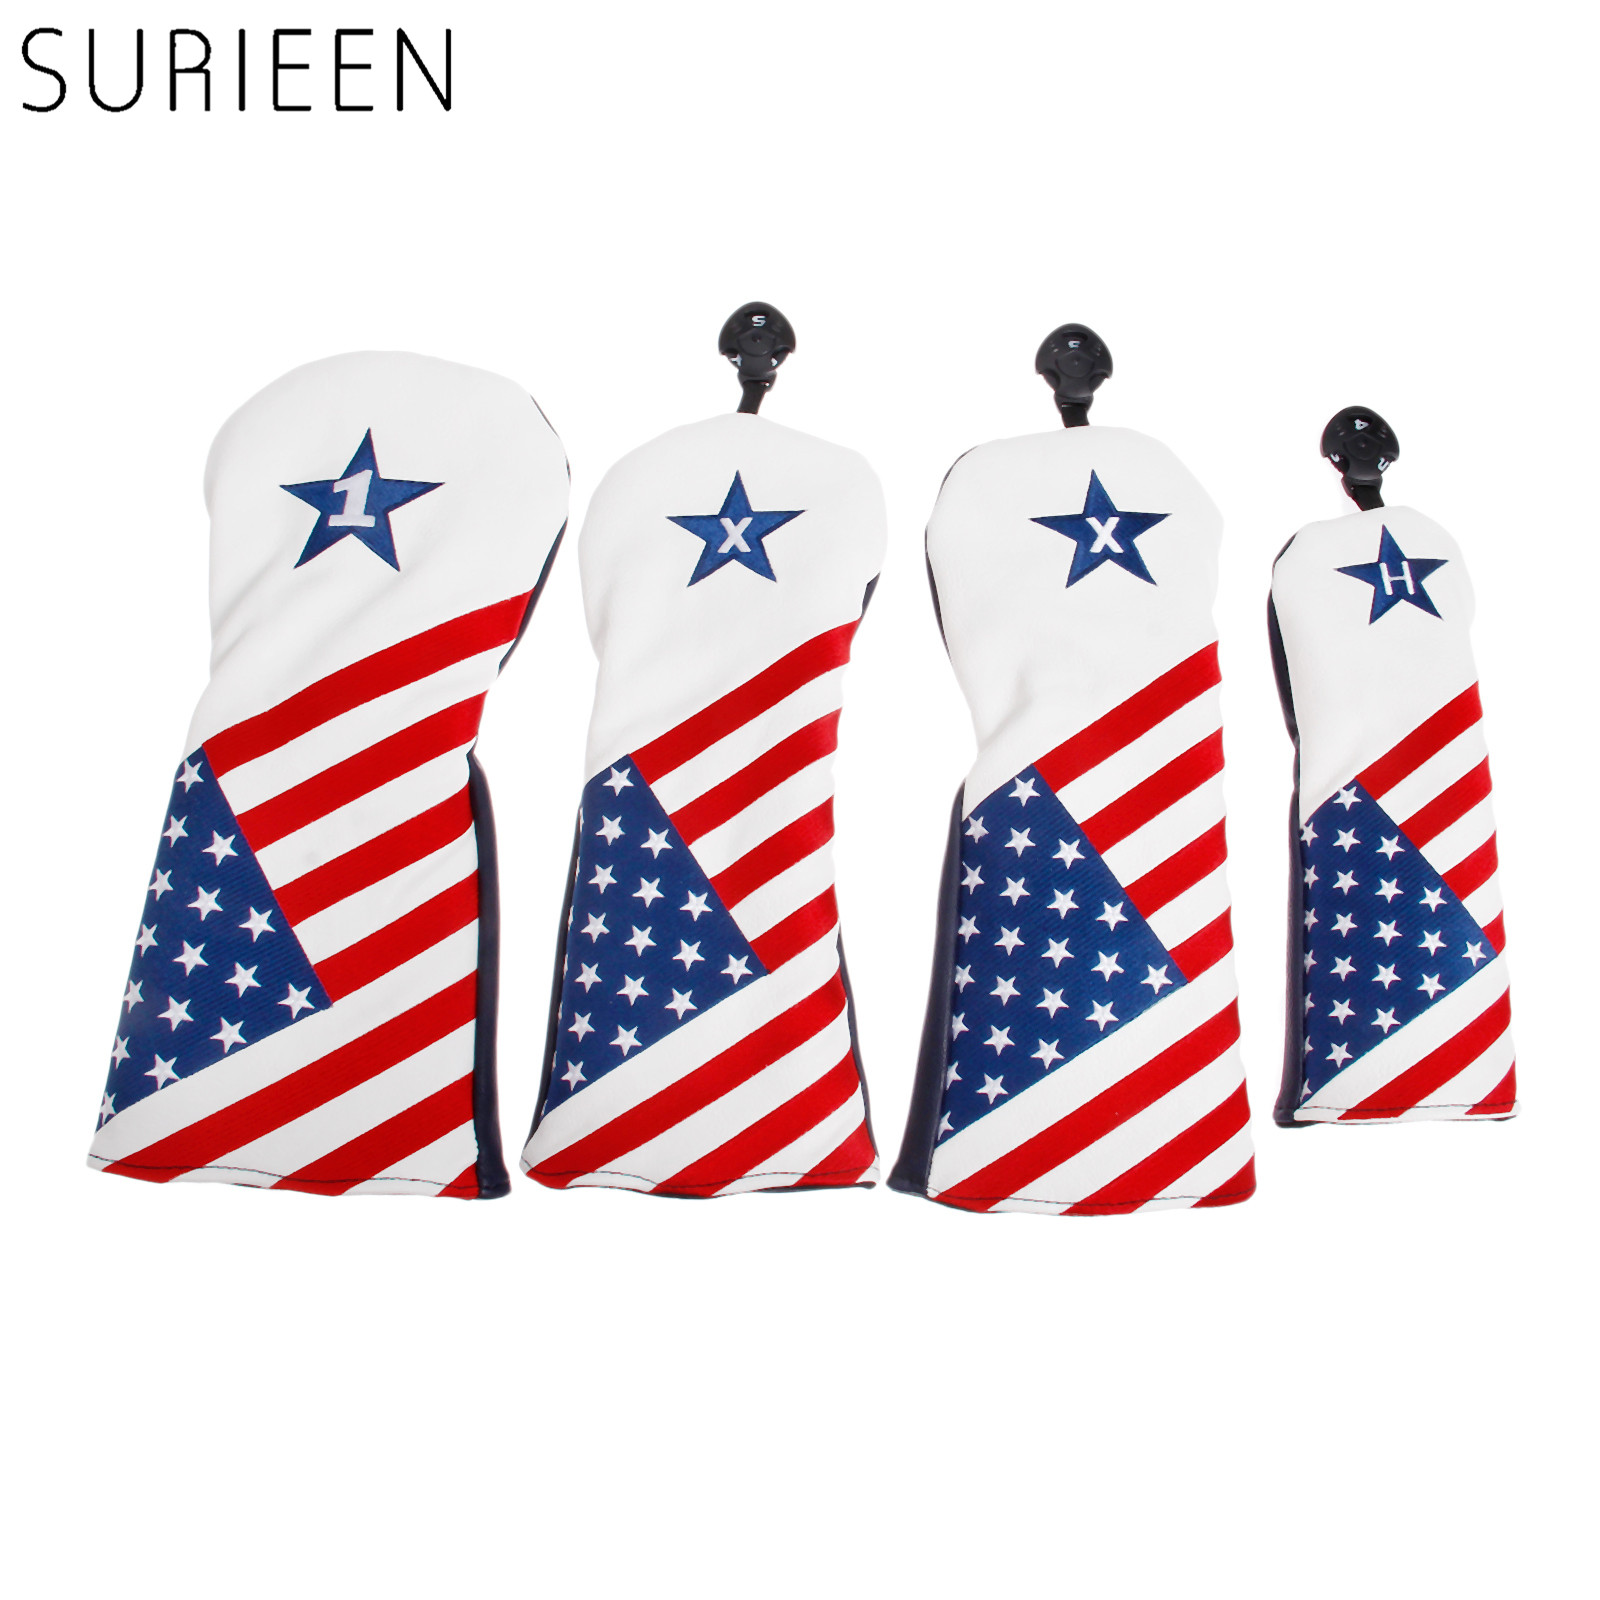 4 Pcs PU Golf Wood Headcover With USA America Flag Style For 1 Golf Driver Cover & 2 Fairway Cover & 3 Hybrid Club Head Covers